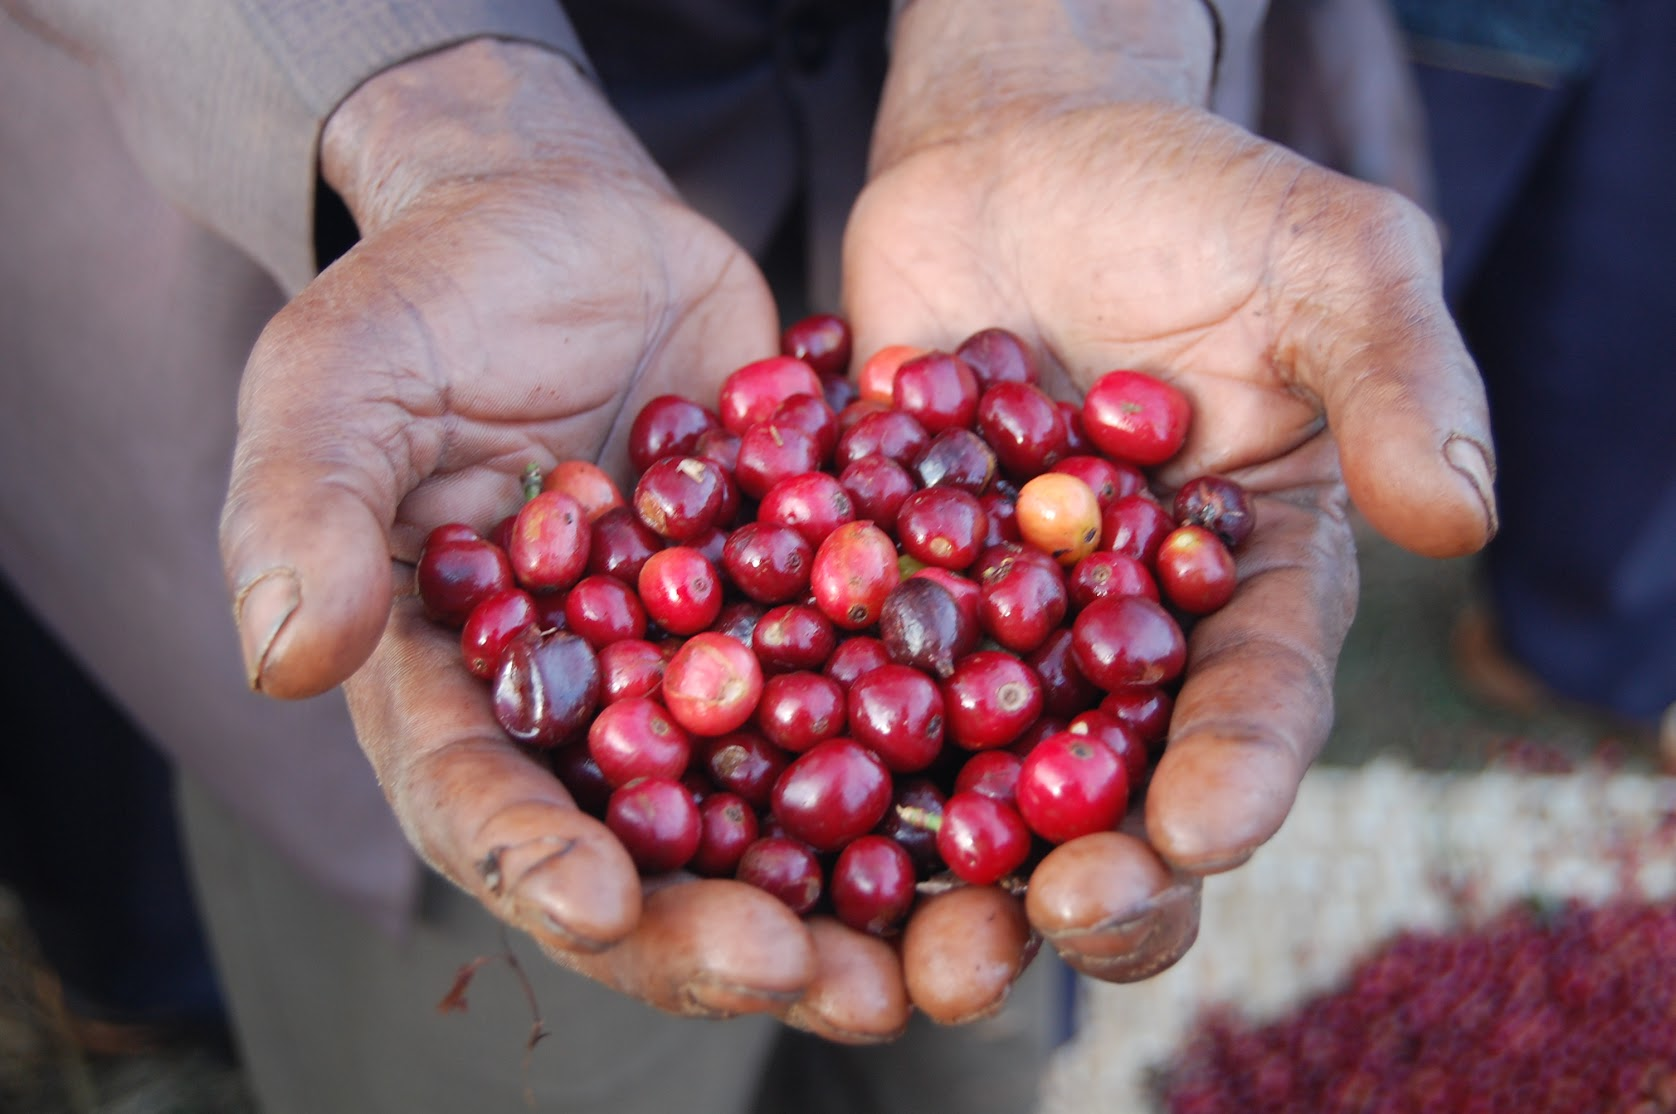 A worker at the Banko Gotiti Cooperative in the Southern Nations, Nationalities and People's Region of Ethiopia holds a handful of ripe red Yirgacheffe coffee berries. Credit: Marcelo Pereira / USAID Agribus Market Develop